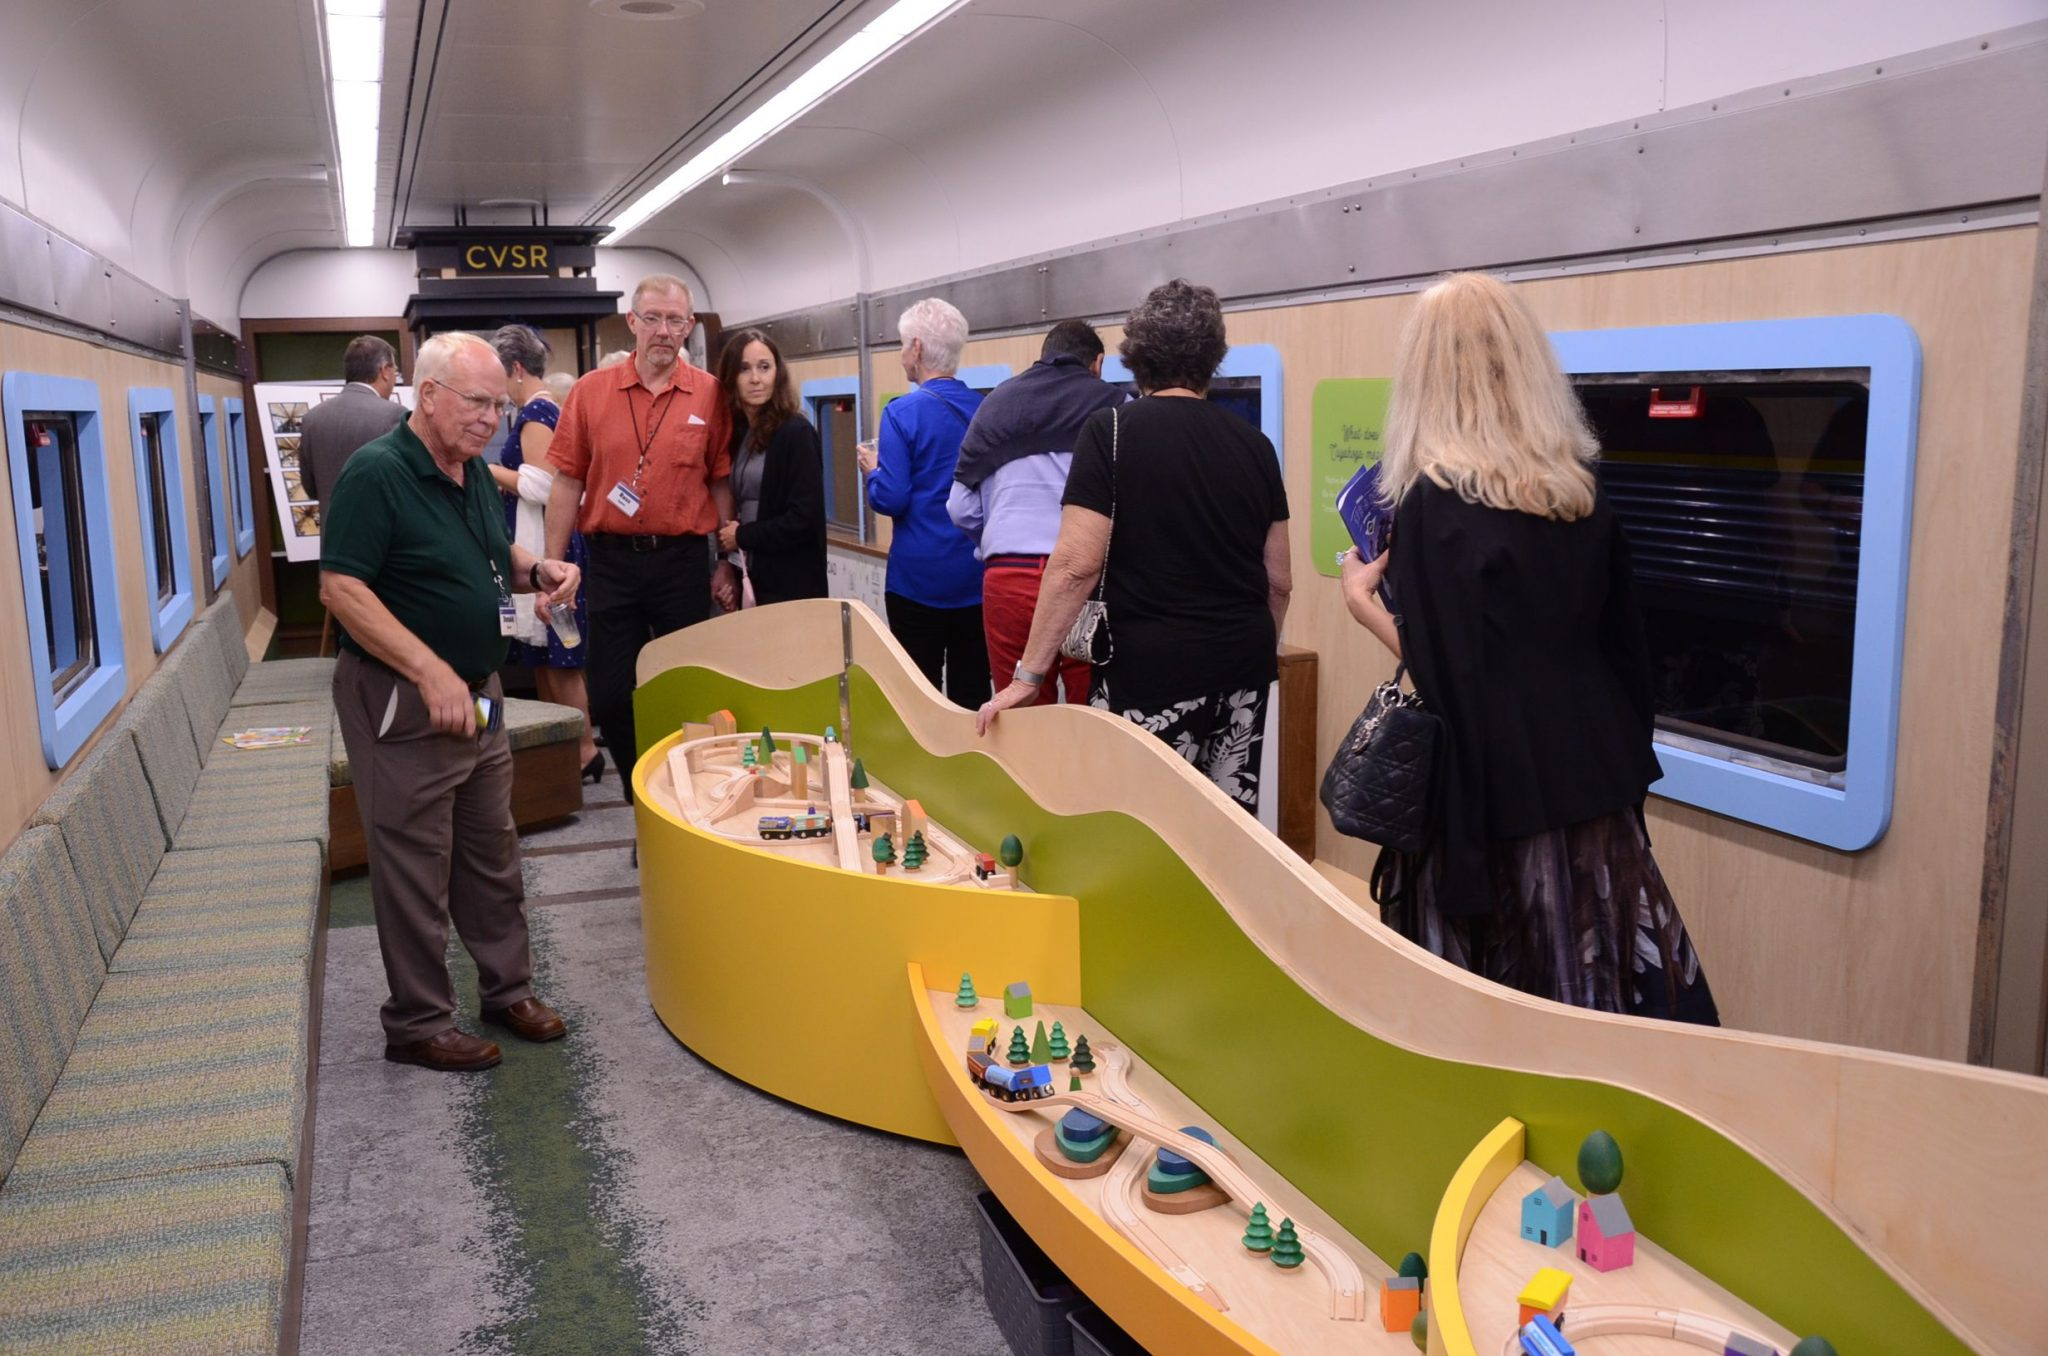 guests view the edu-trainment car with train sets and interactive exhibits.